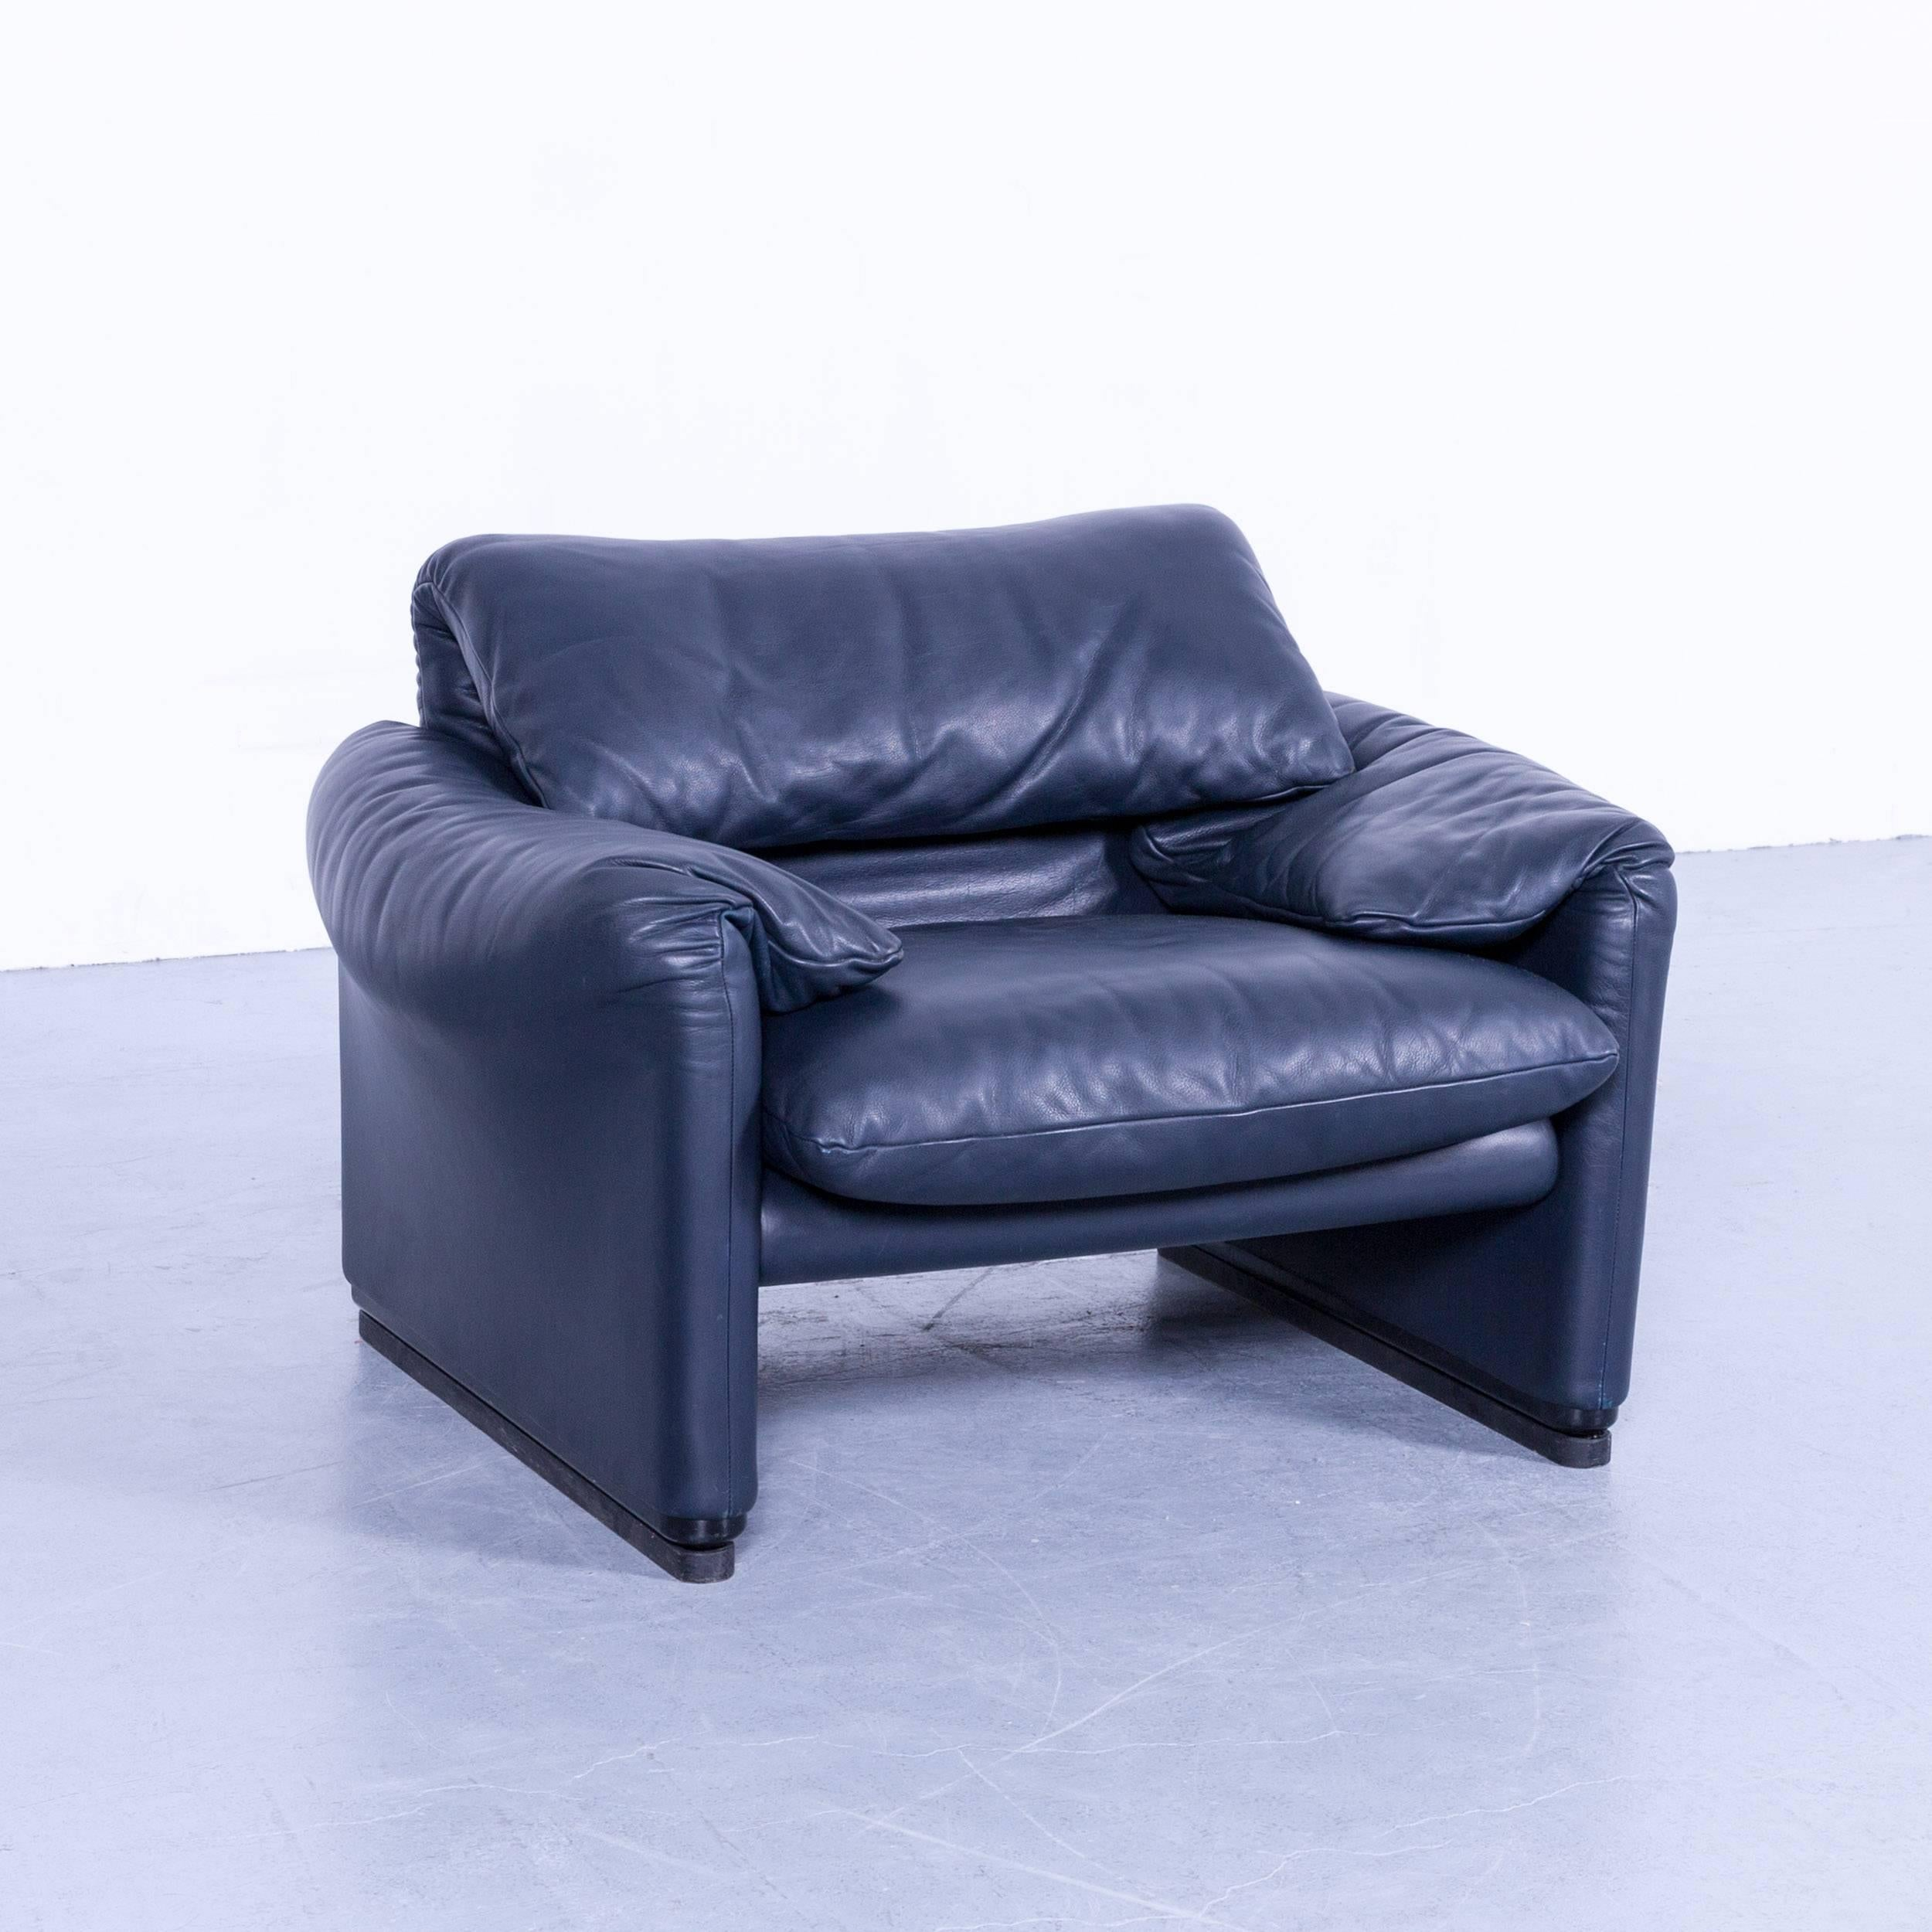 Maralunga Sessel Cassina Maralunga Blue Leather Armchair Stool Set By Vico Magistretti Function